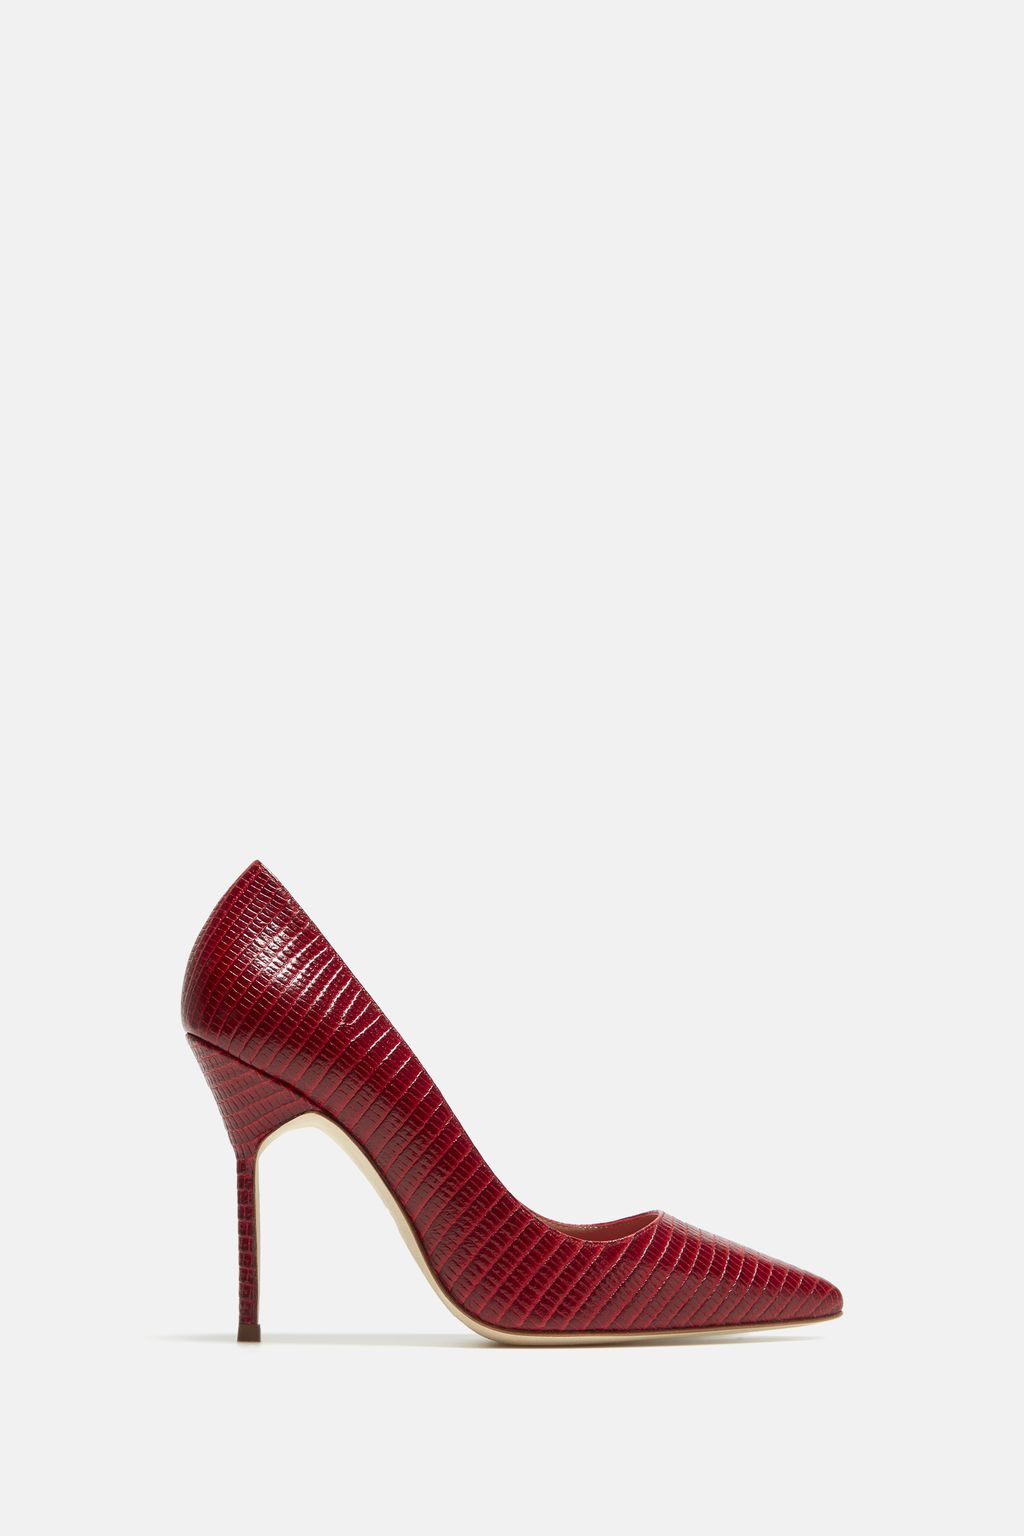 Croc-effect leather pumps